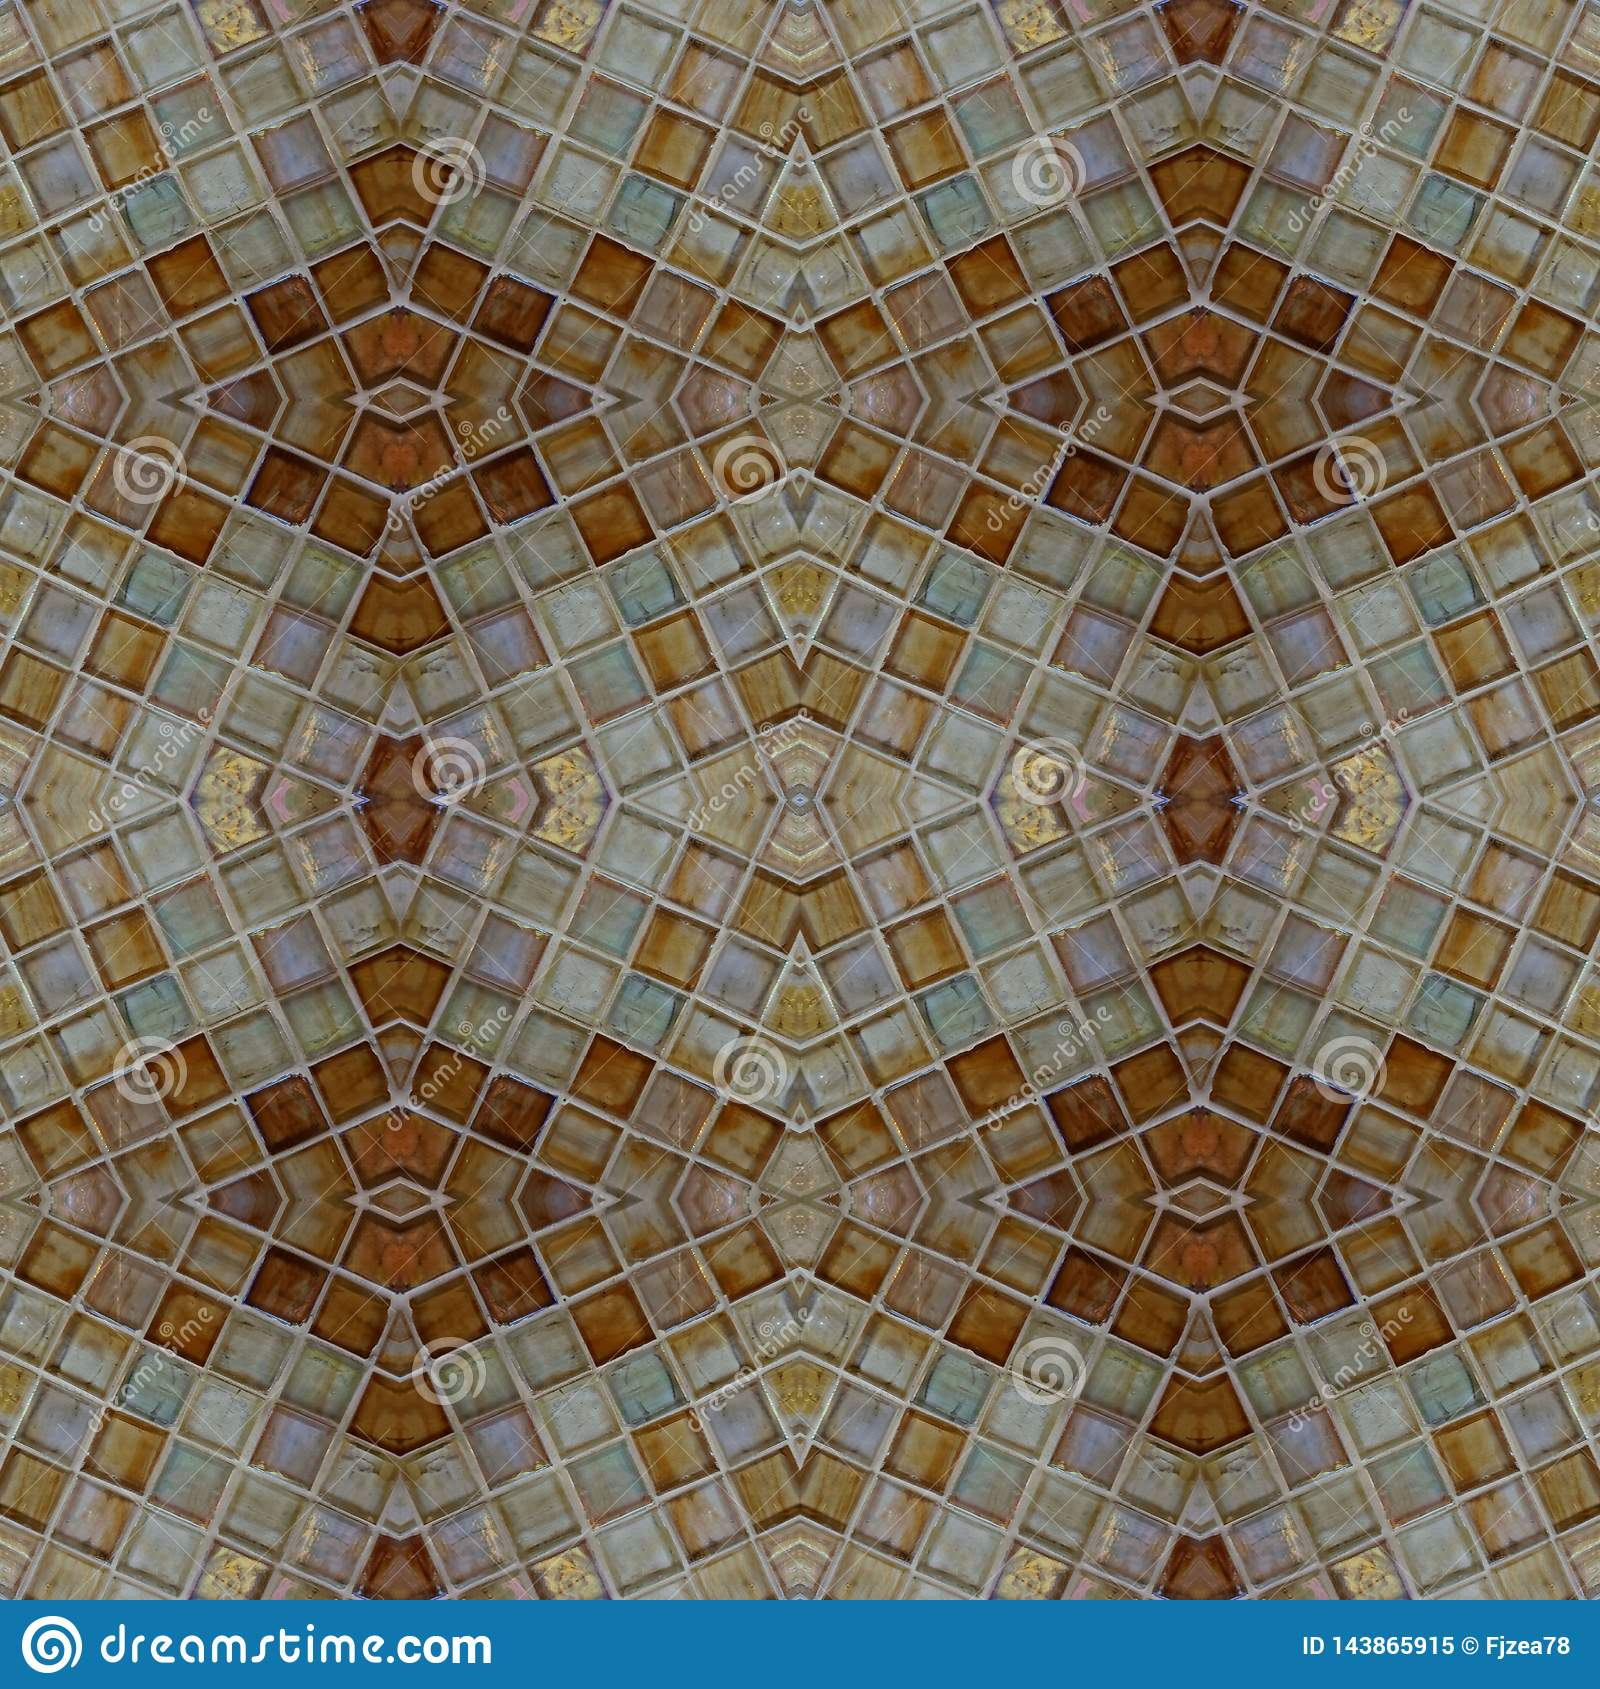 abstract design with glass blocks in brown colors, background and texture